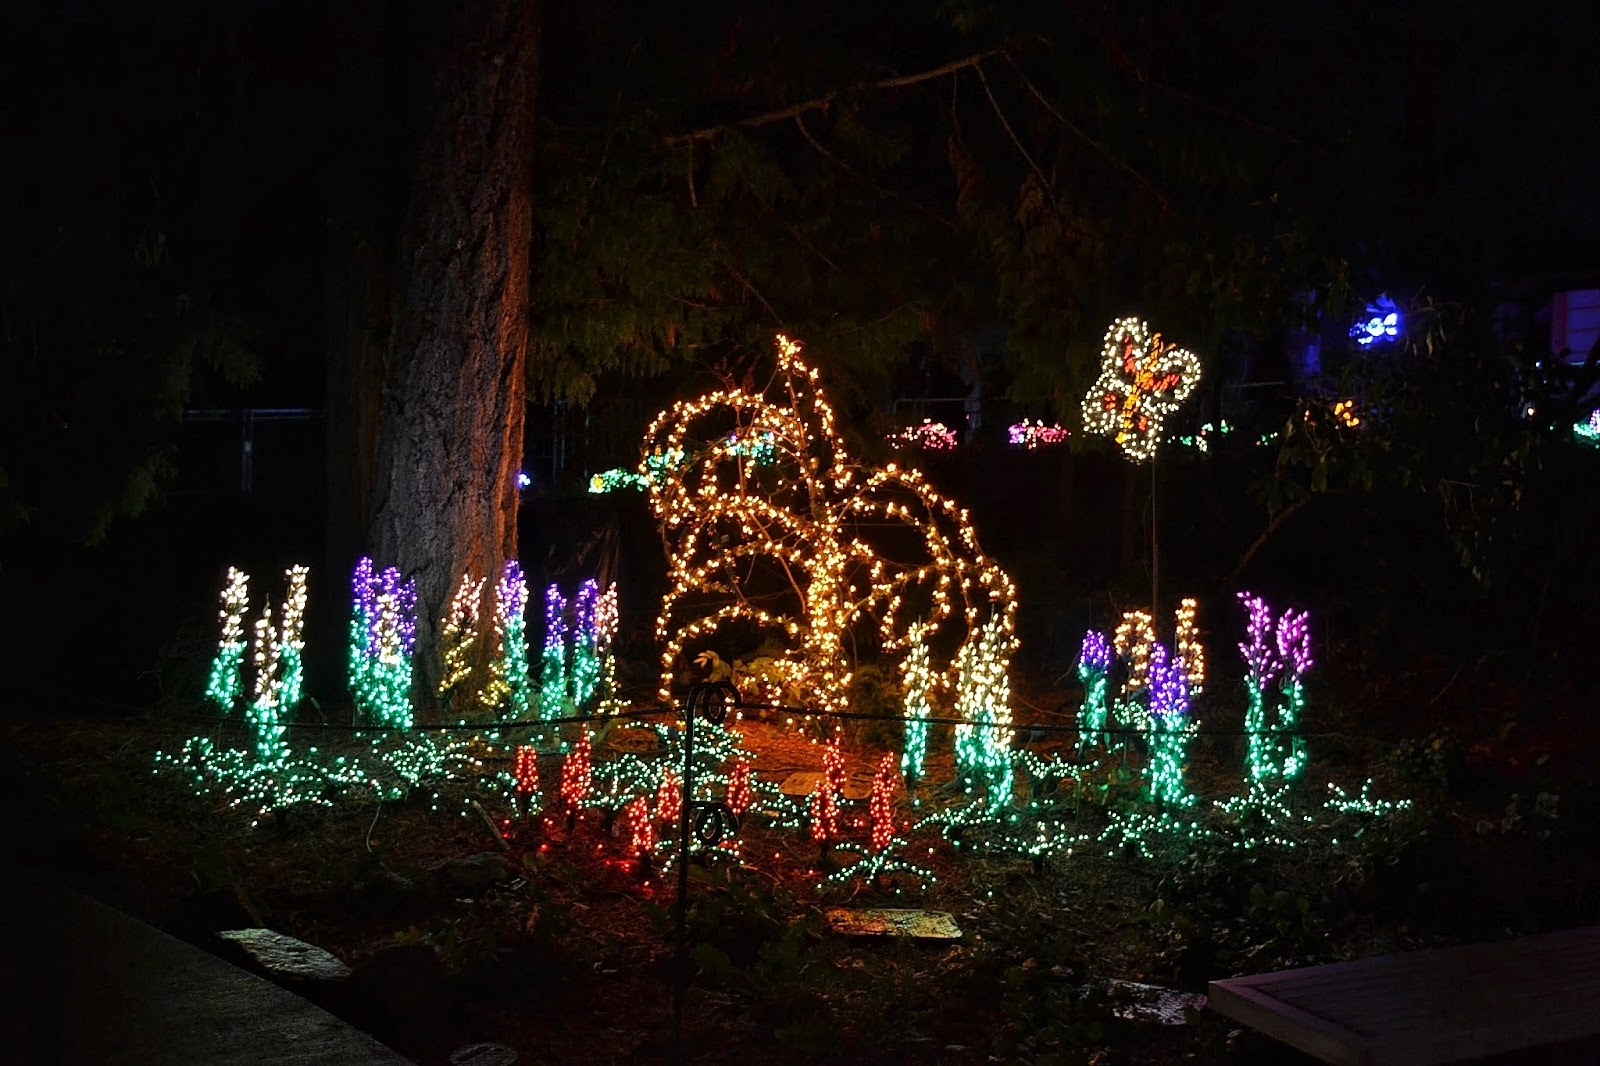 The Outlaw Gardener: Garden D'lights At Bellevue Botanical Garden pertaining to Garden Light In Bellevue Wa